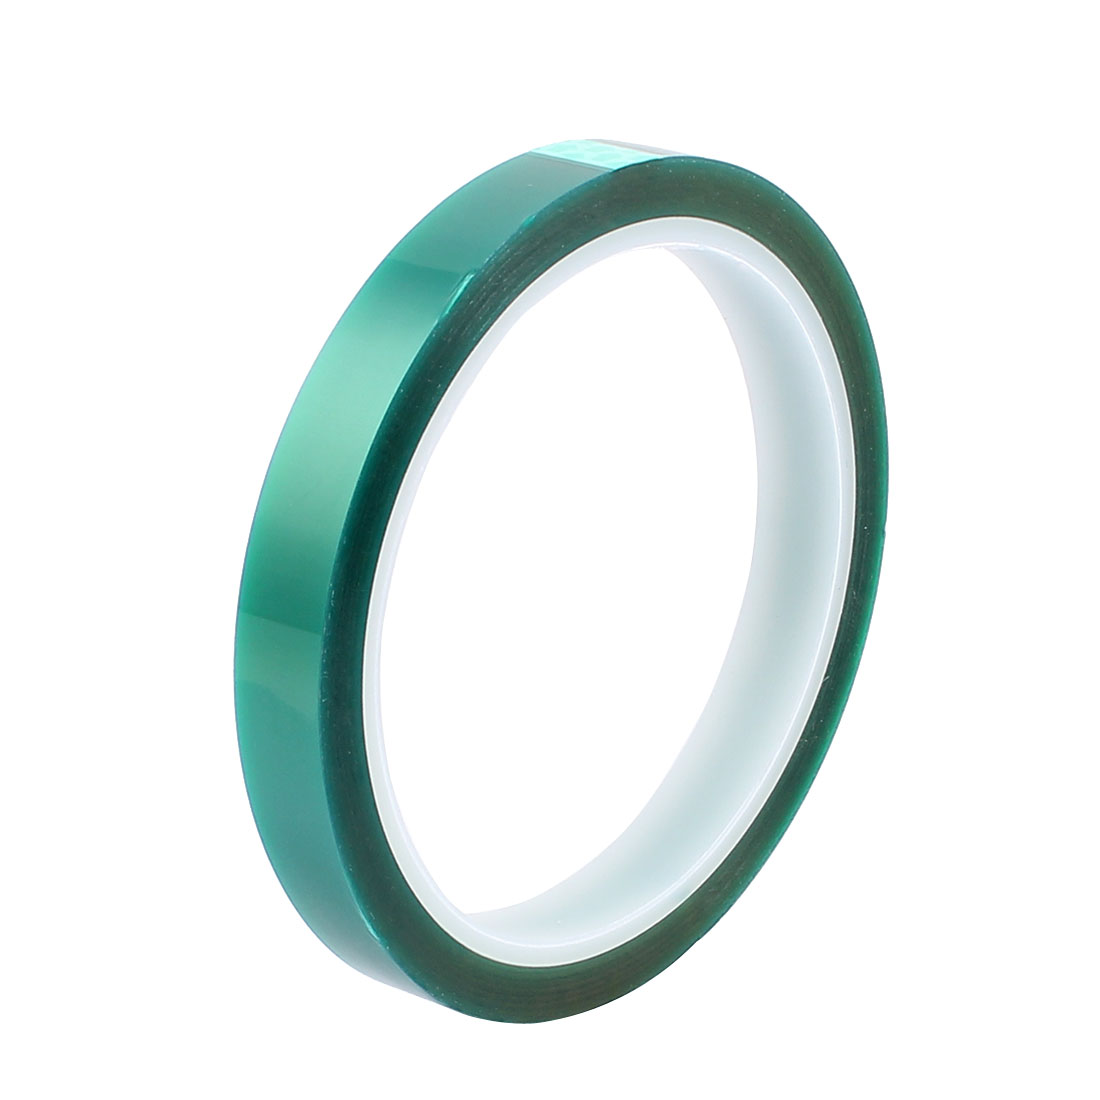 12mm Width 33M Length Green PET High Temperature Heat Resistant PCB Solder Tape